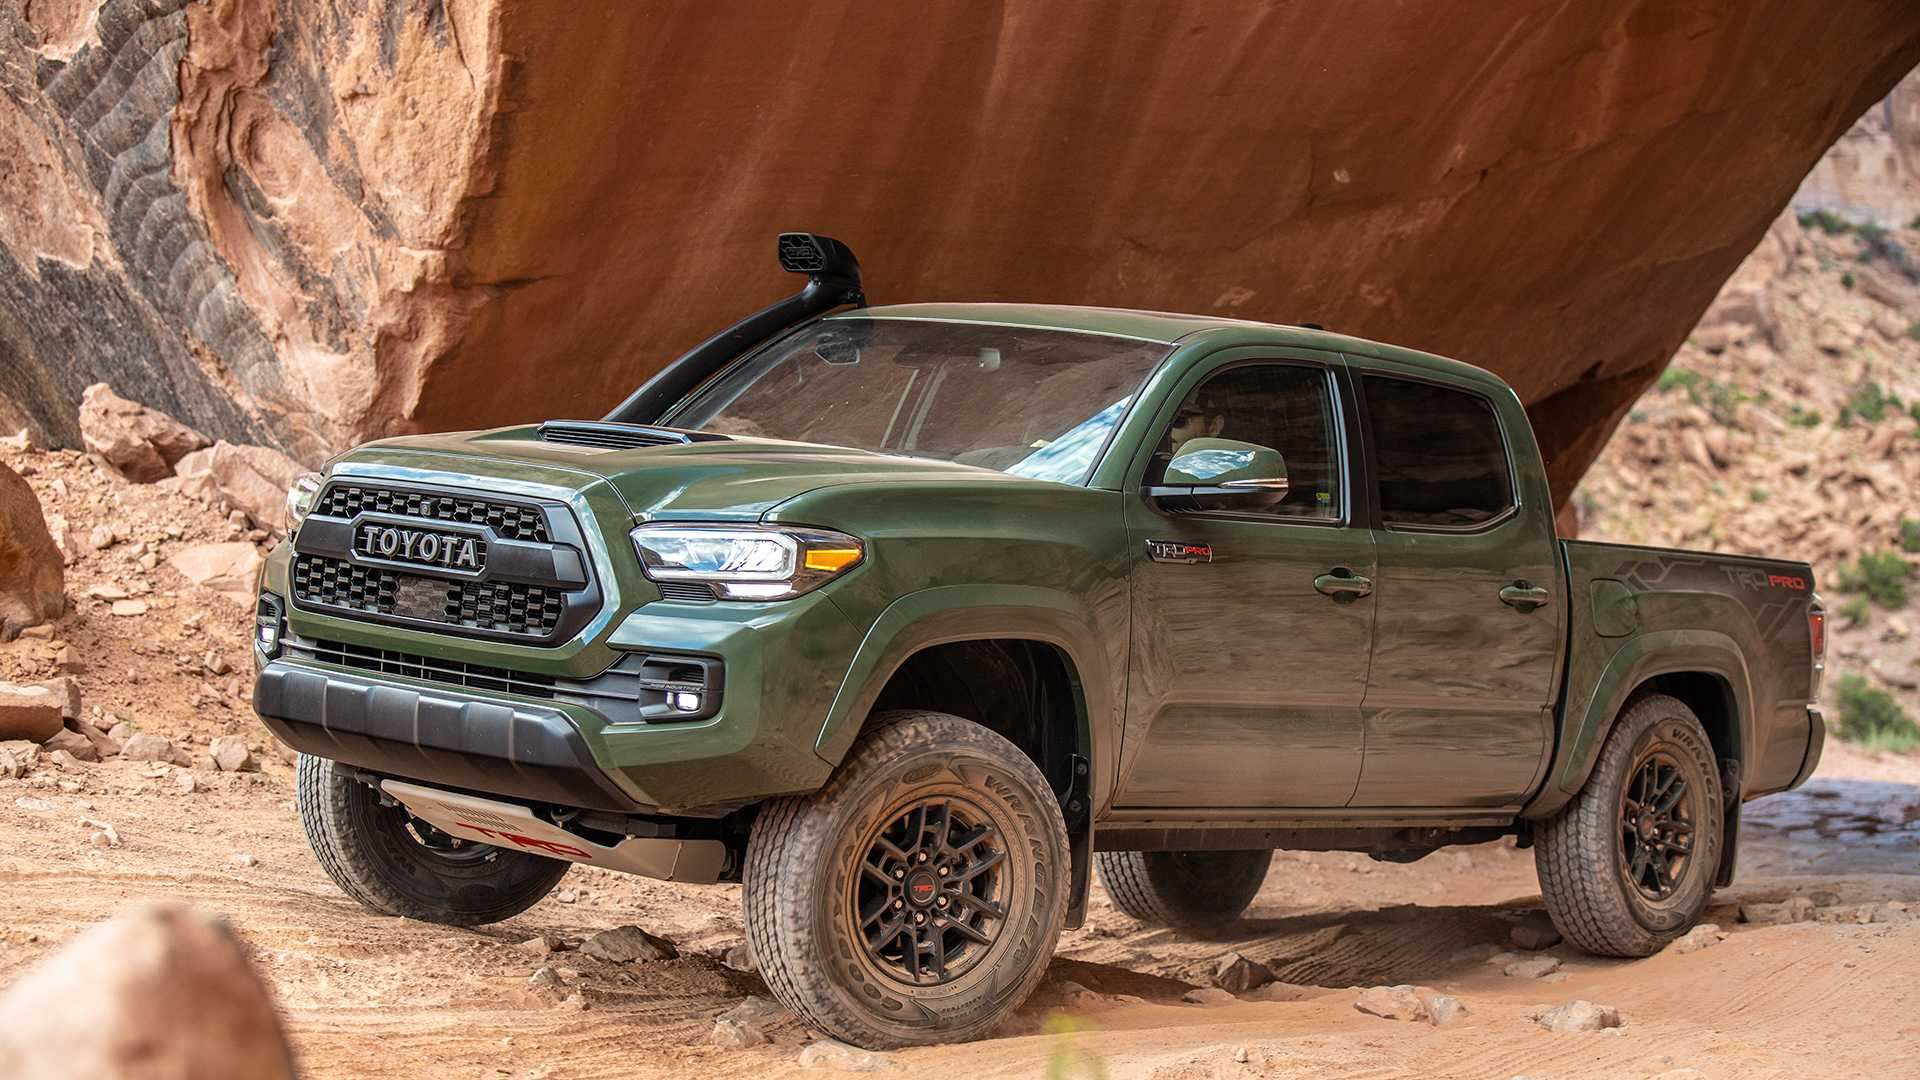 88 The Best Toyota Tacoma 2020 Wallpaper